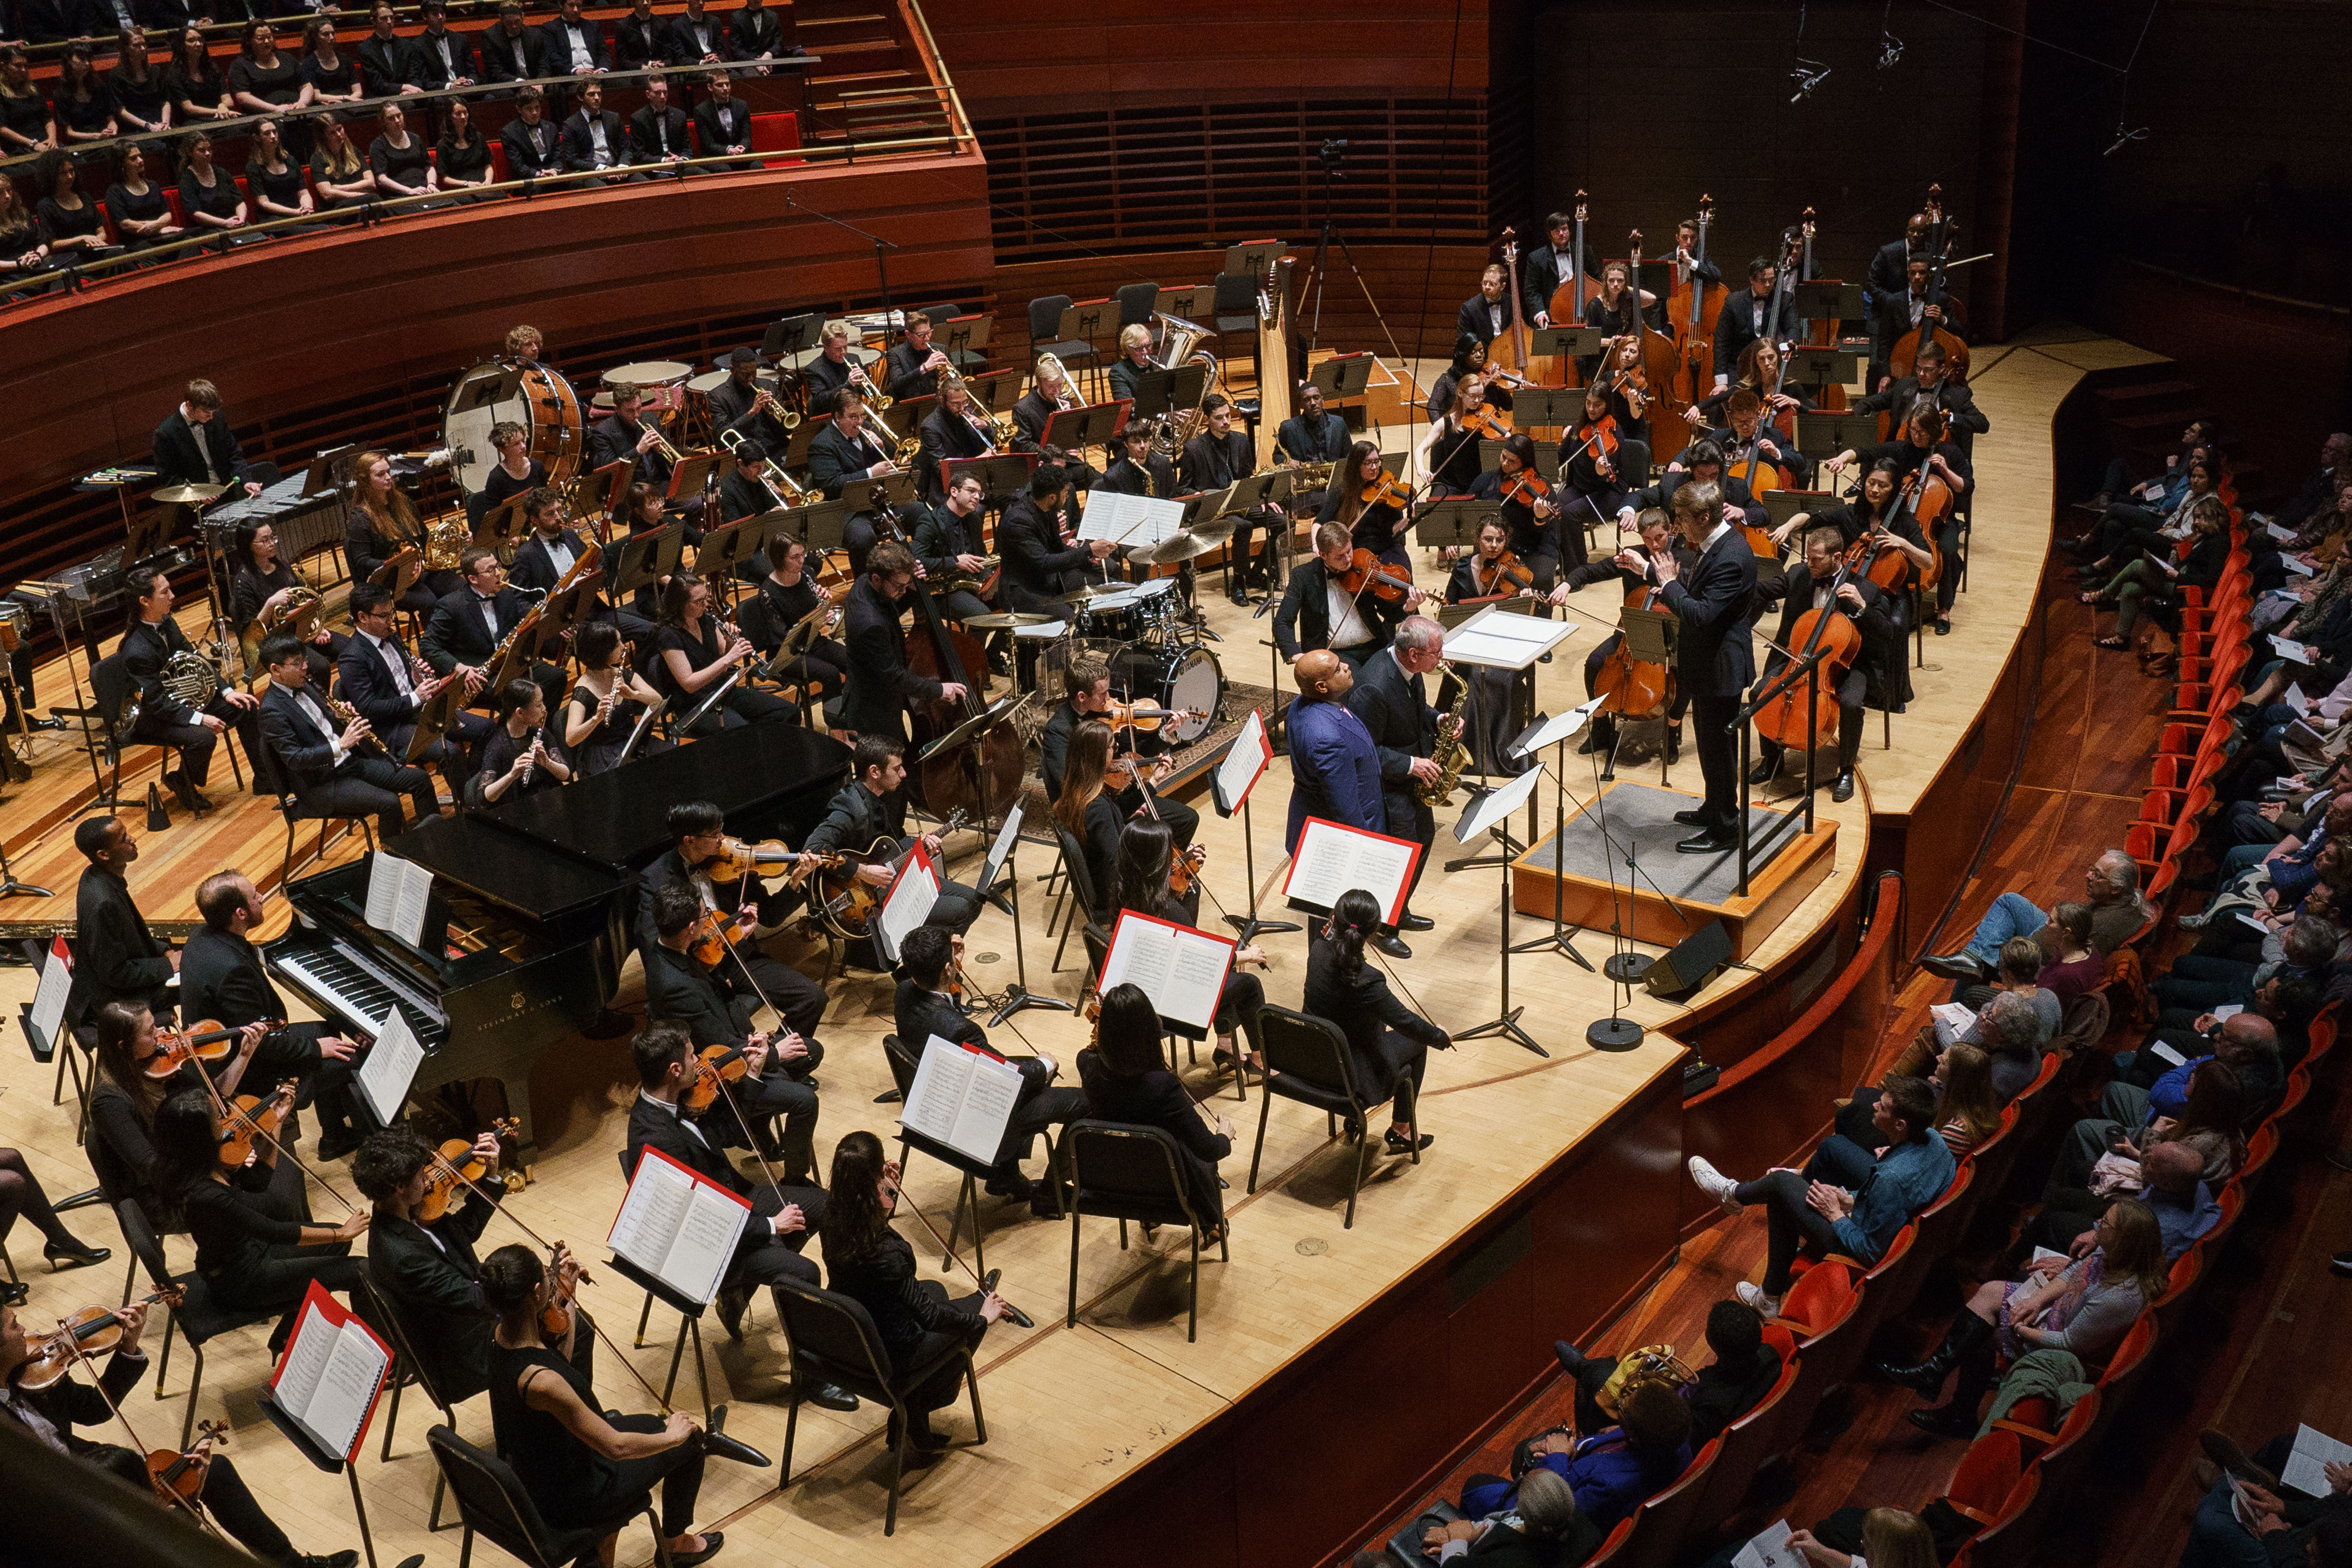 Temple University orchestra musicians, jazz musicians, saxophonist Dick Oatts, trumpeter Terell Stafford and conductor Vince Mendoza performing on stage at the Kimmel Center for the Performing Arts.